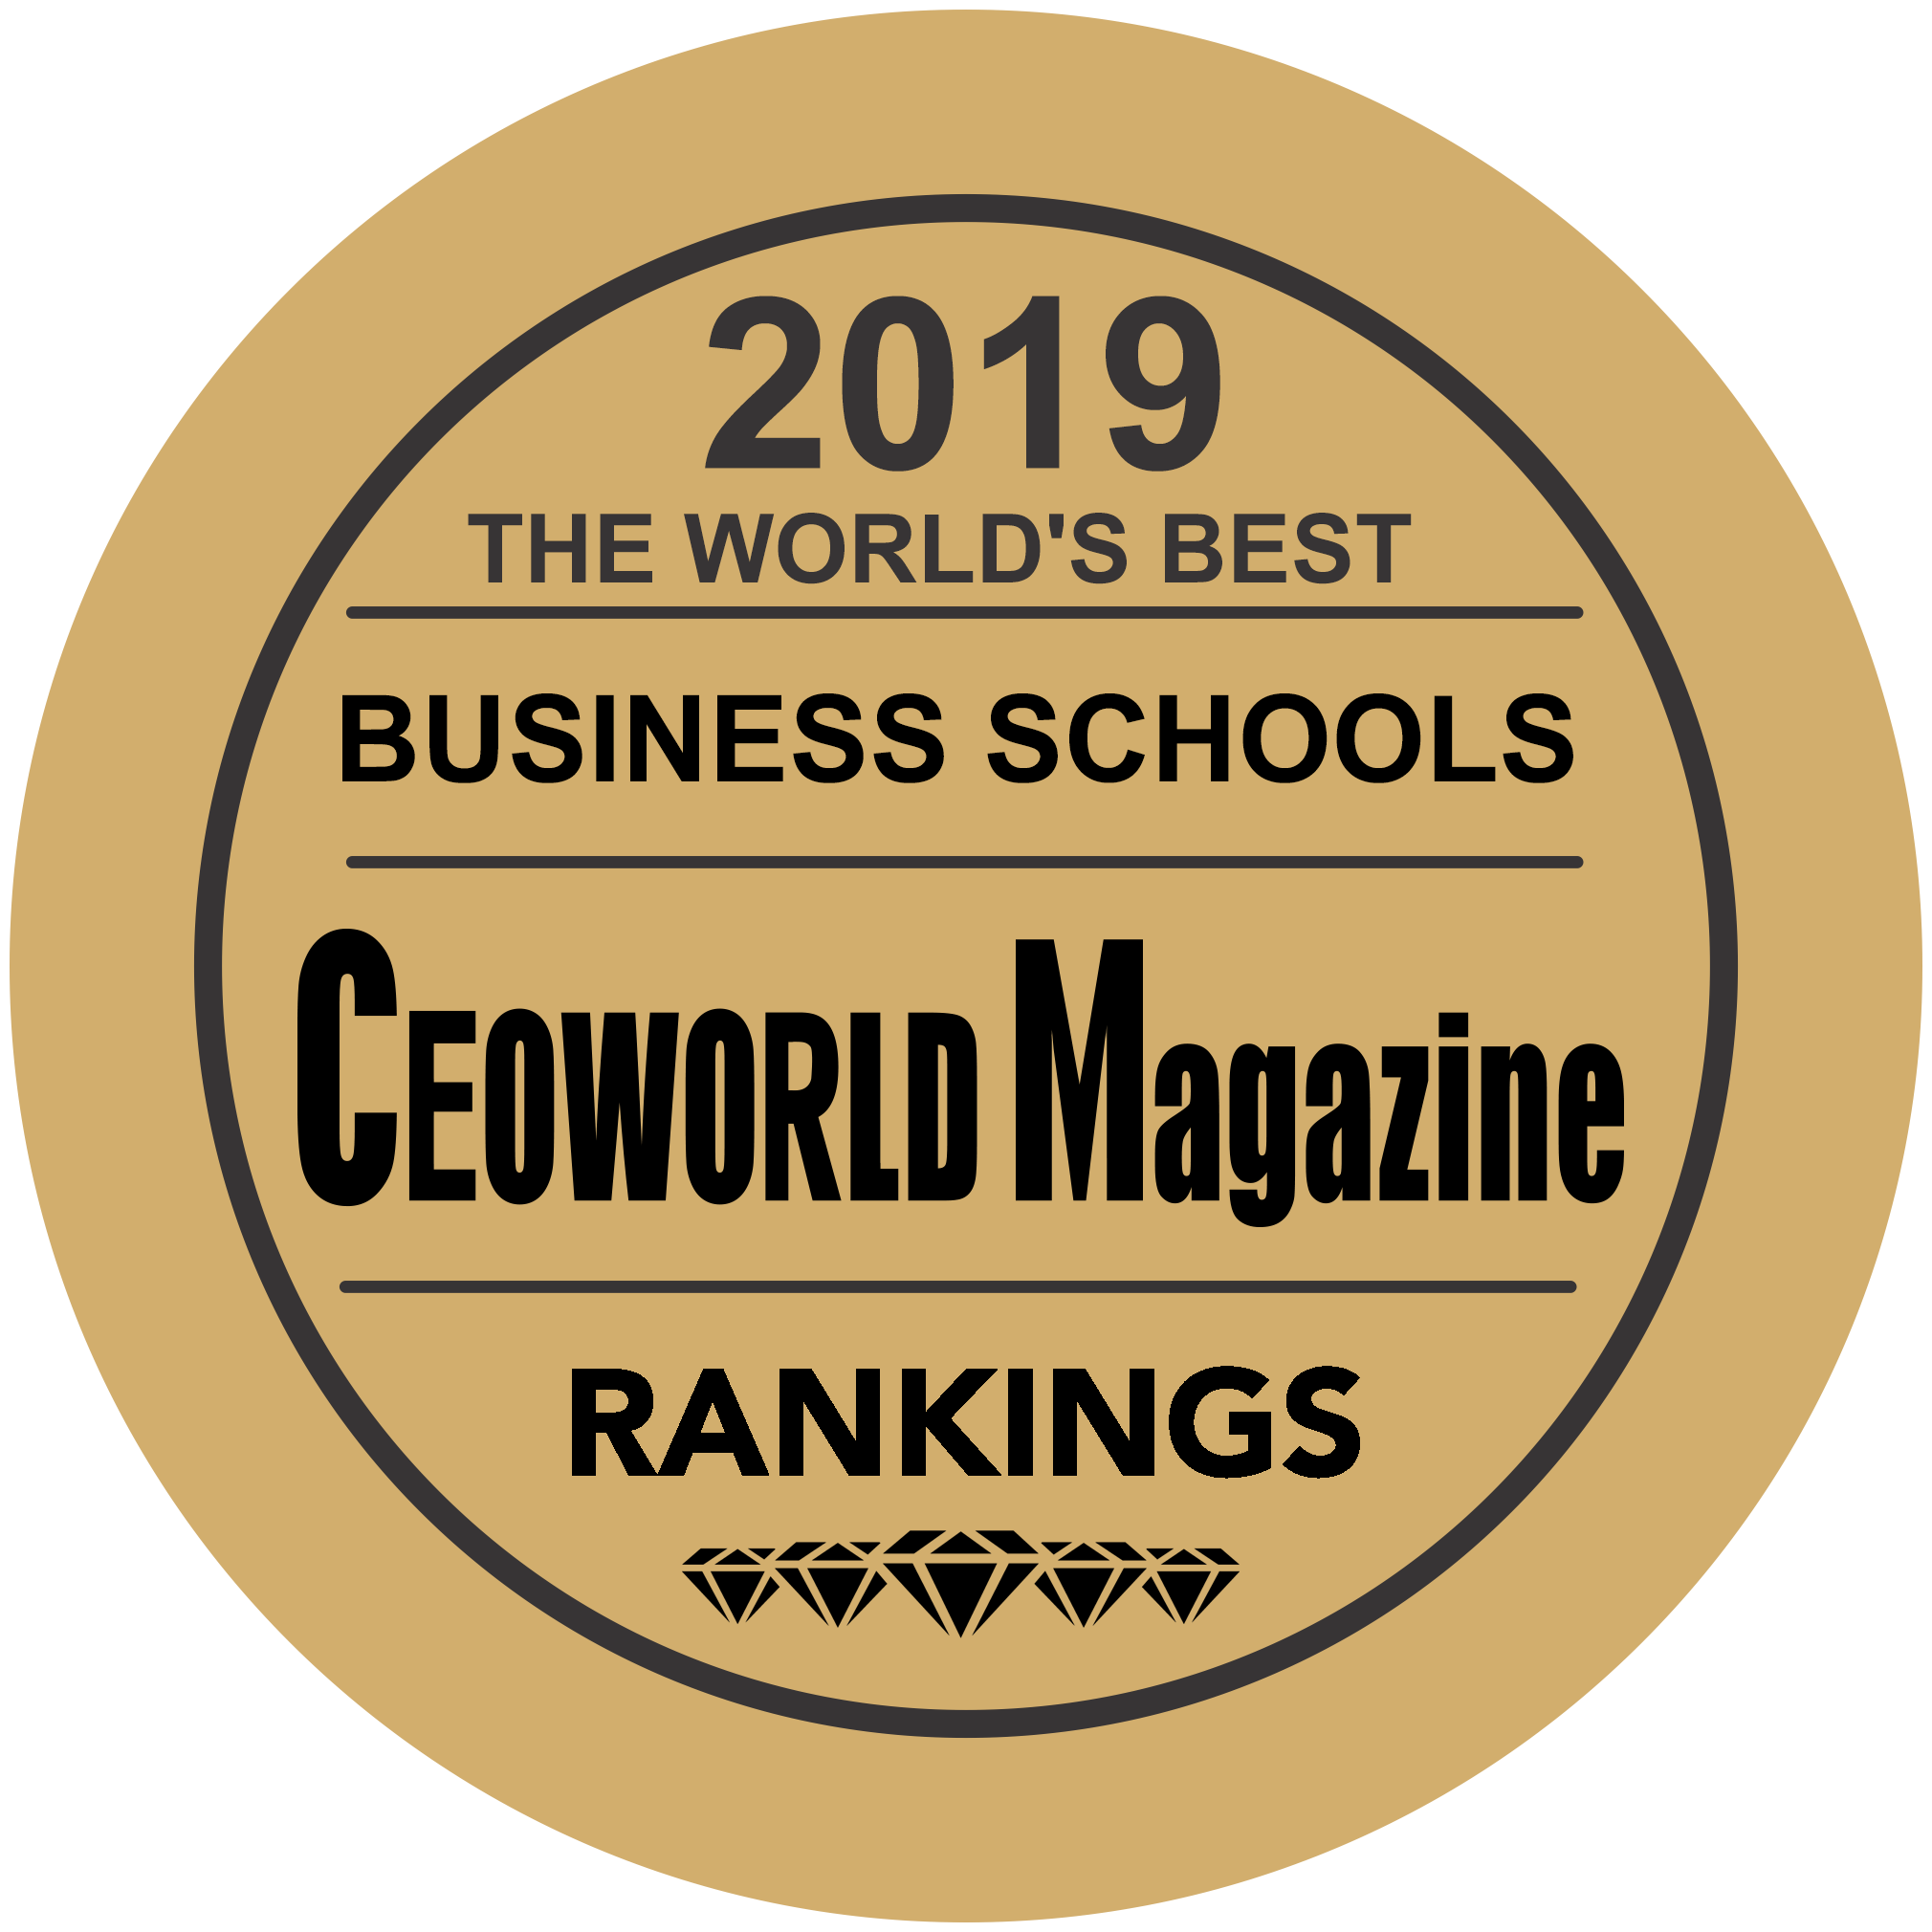 Best Business Schools In The World For 2019 | CEOWORLD magazine